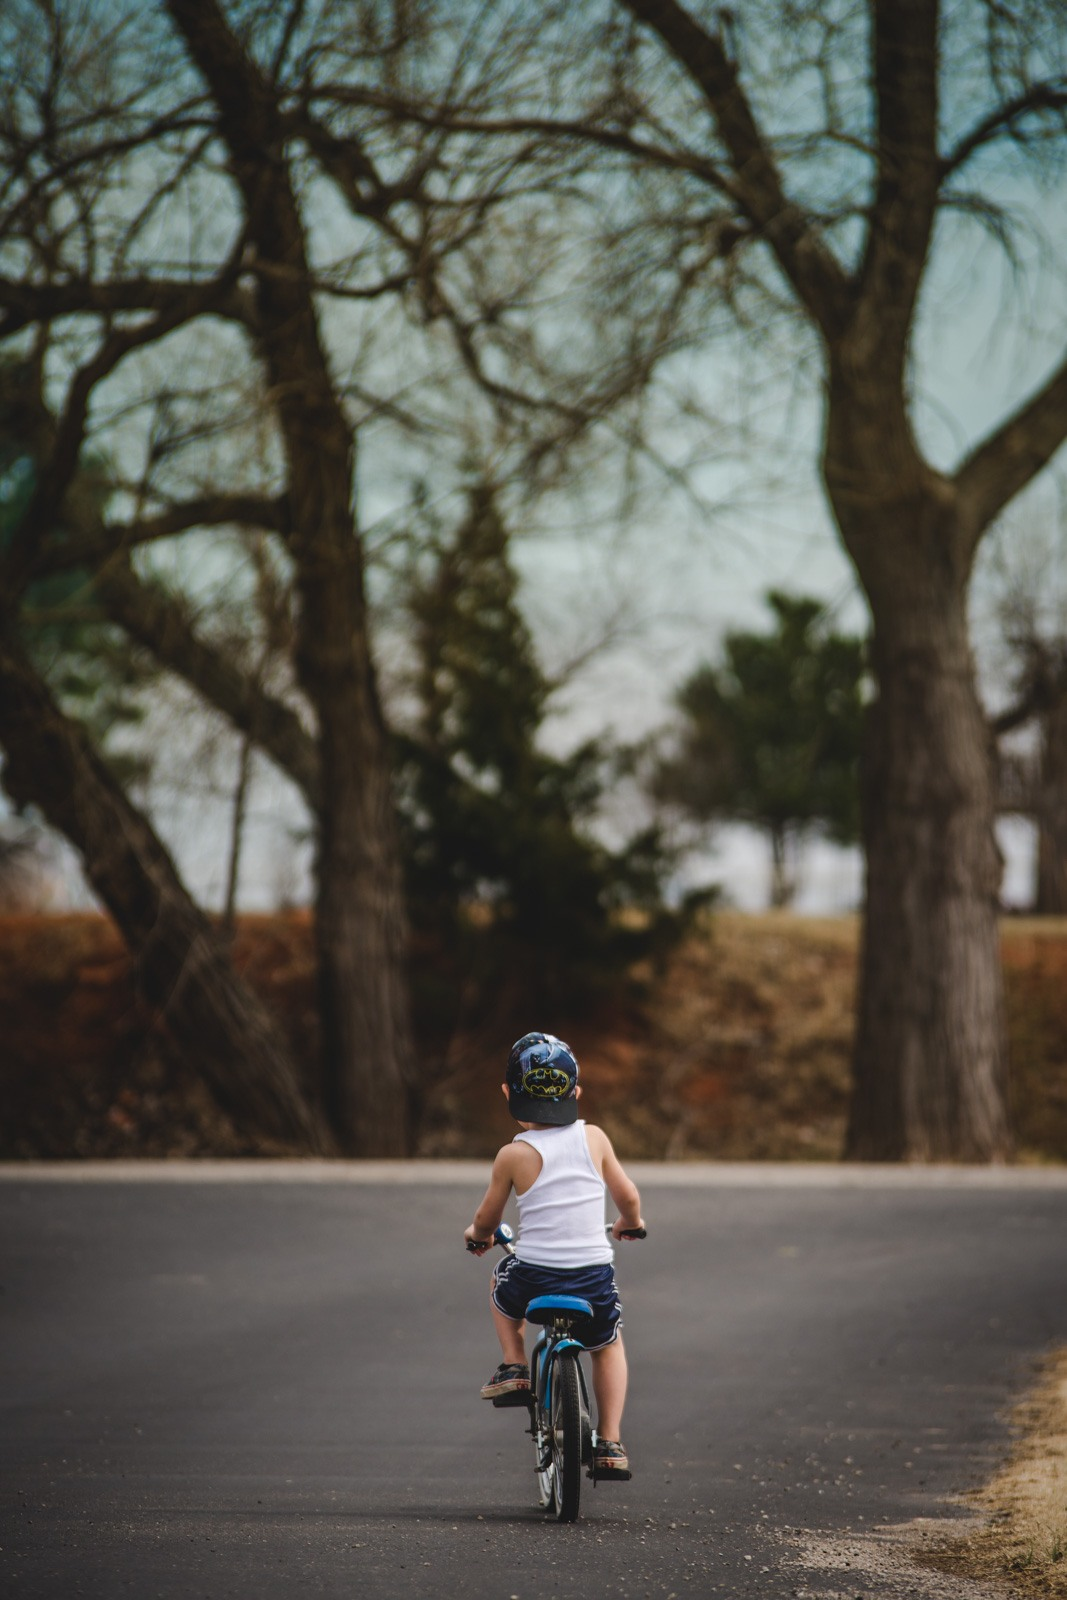 A boy rides away on a bike, taking a break from photography